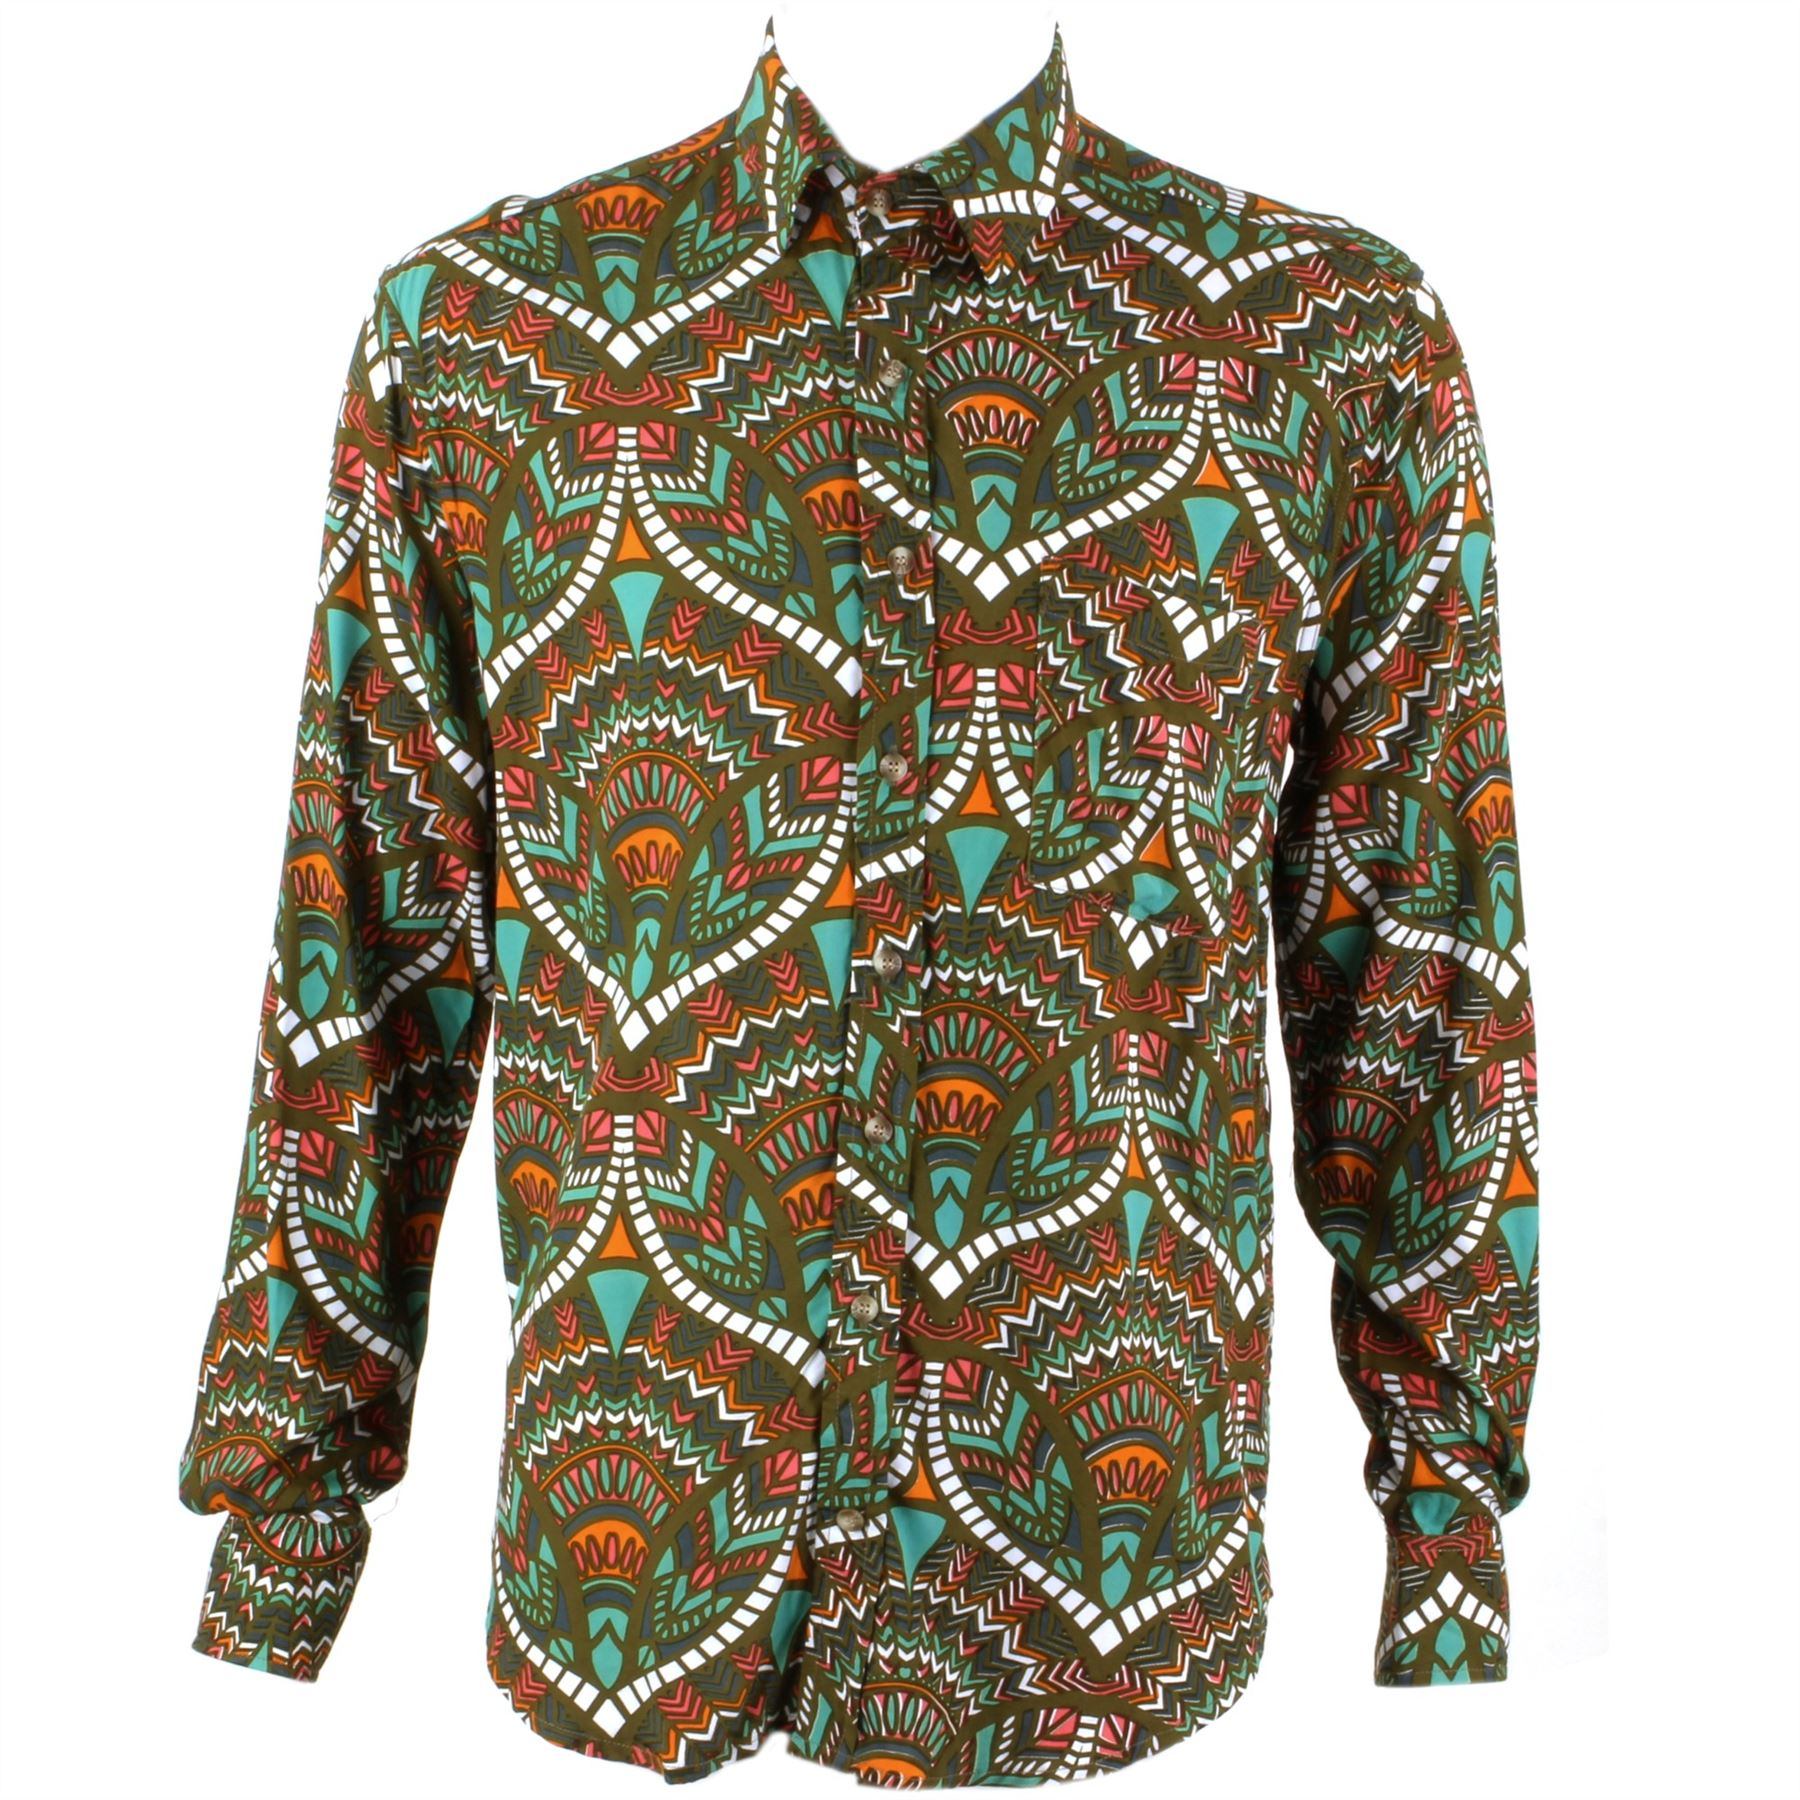 Mens Loud Shirt Retro Psychedelic Festival Party Funky Abstract Brown  REGULAR